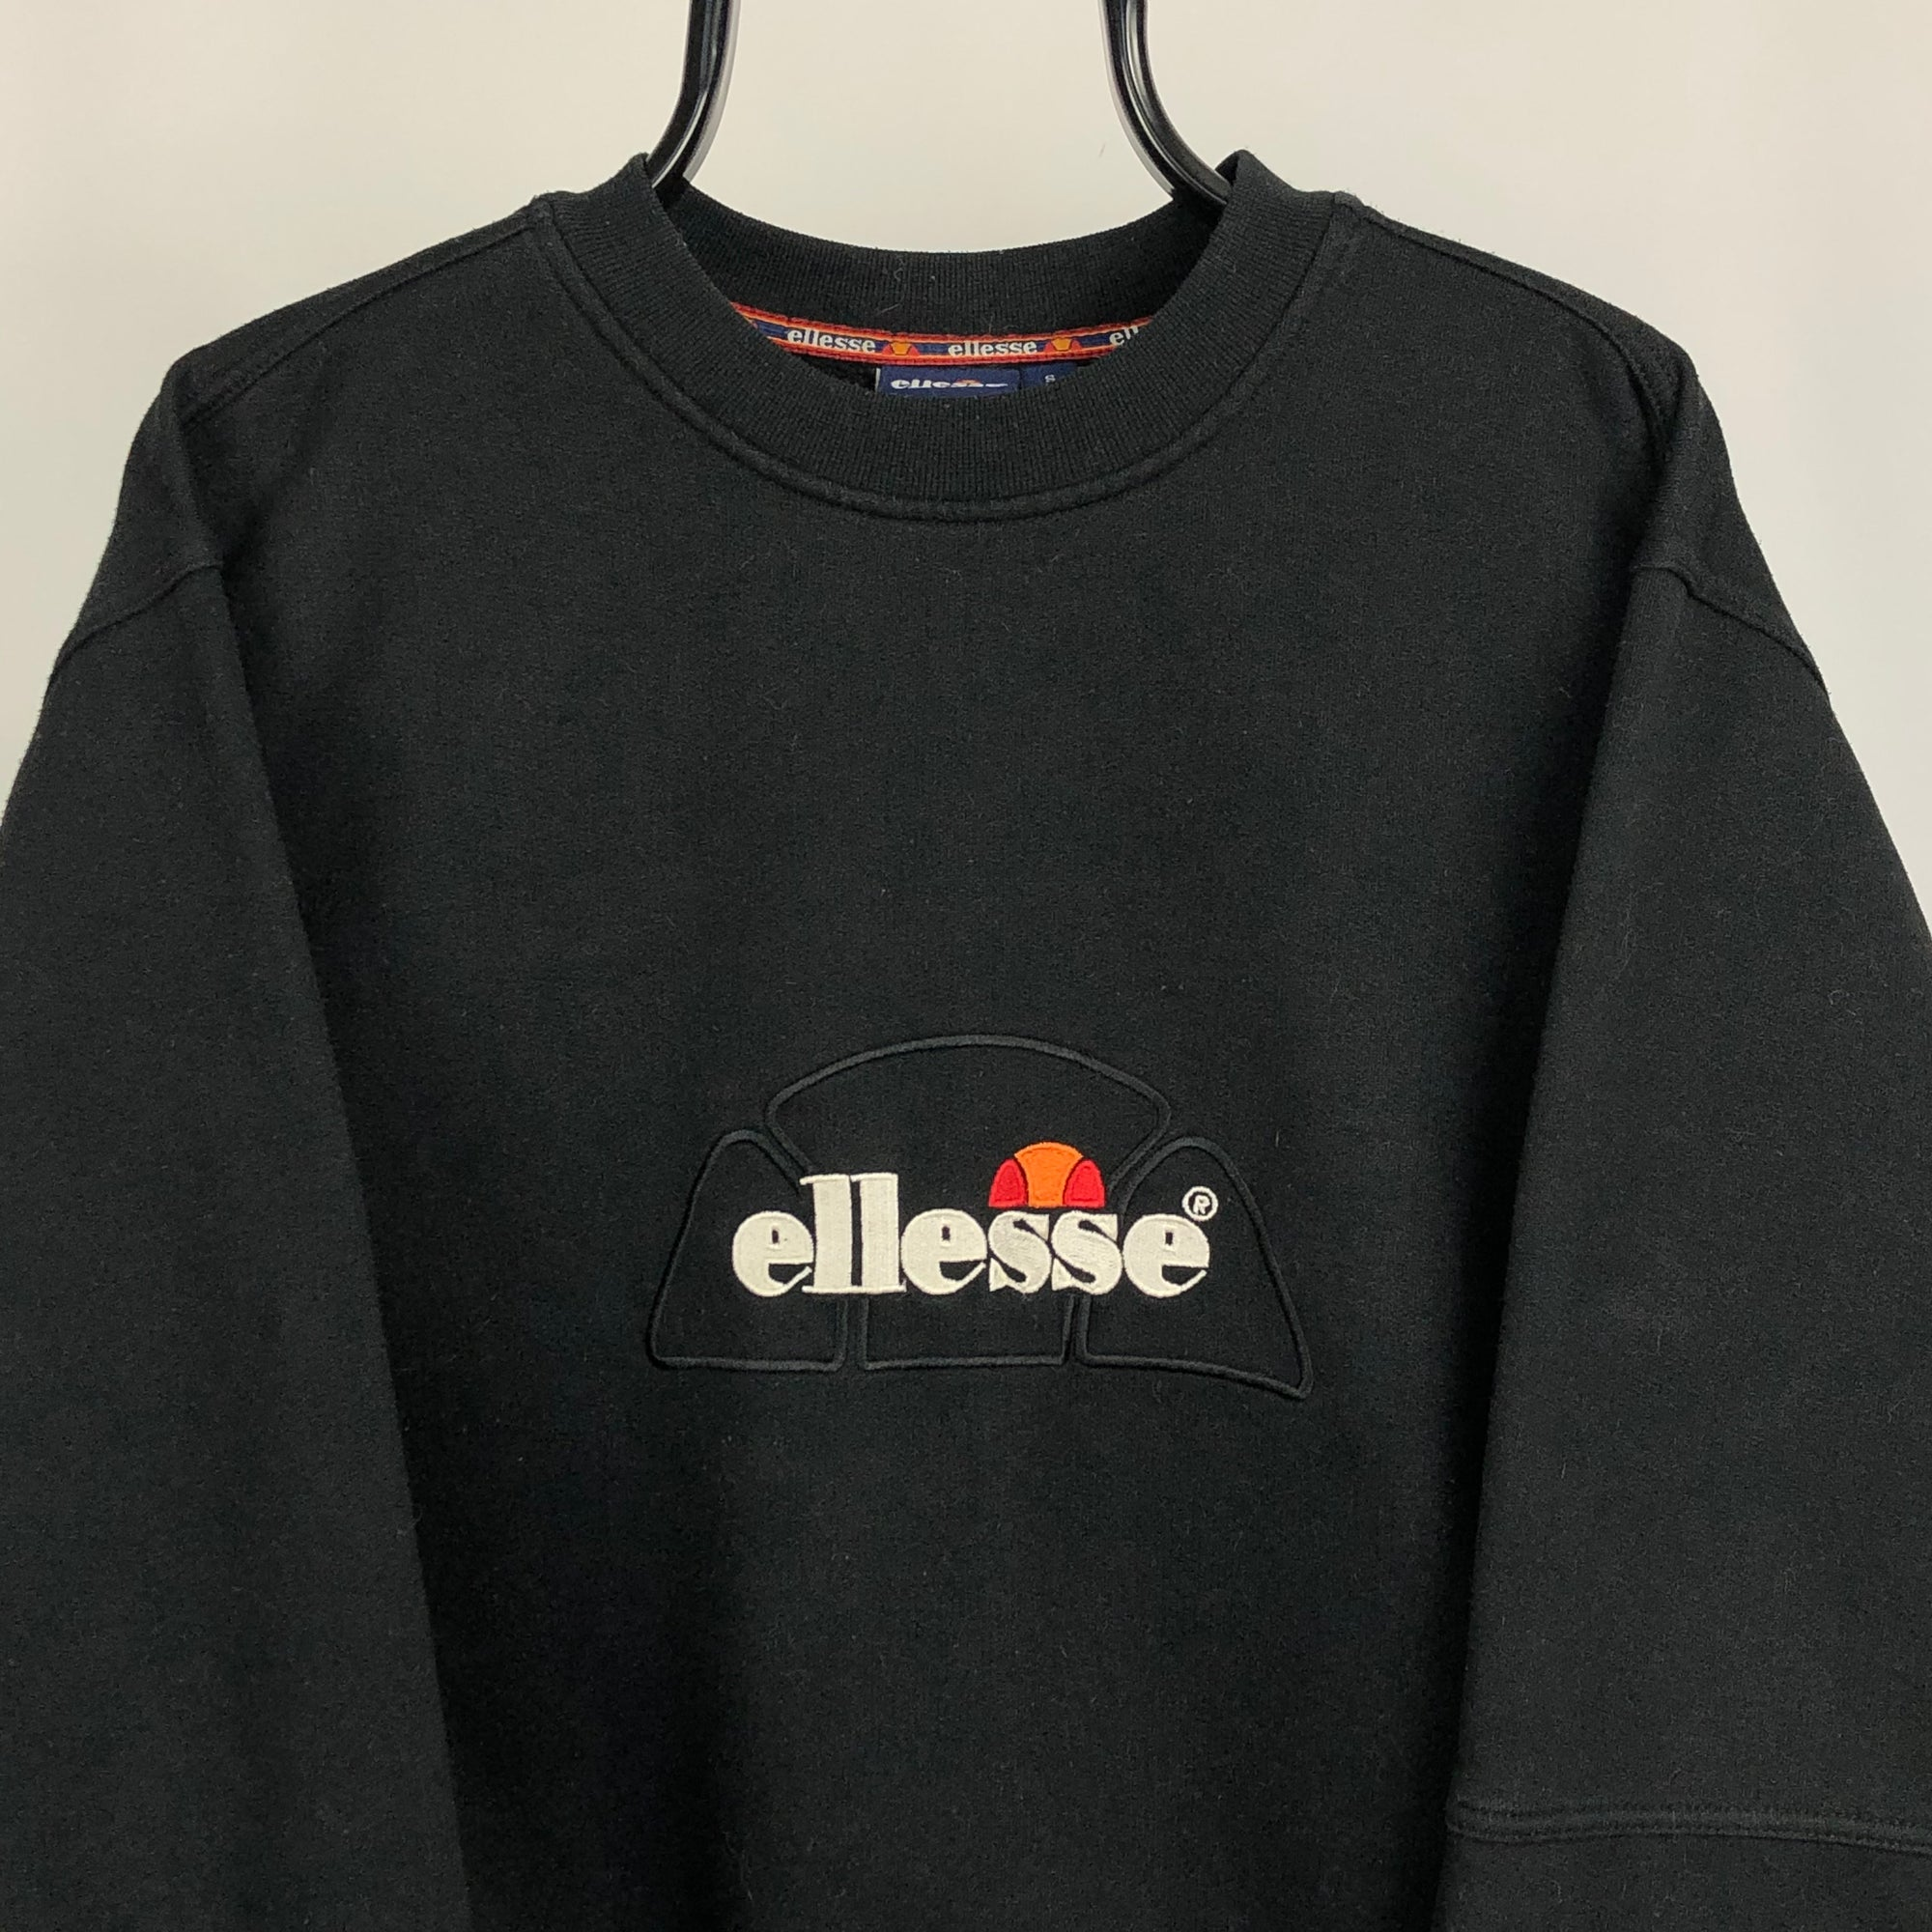 Vintage 90s Ellesse Spellout Sweatshirt in Black - Men's Small/Women's Medium